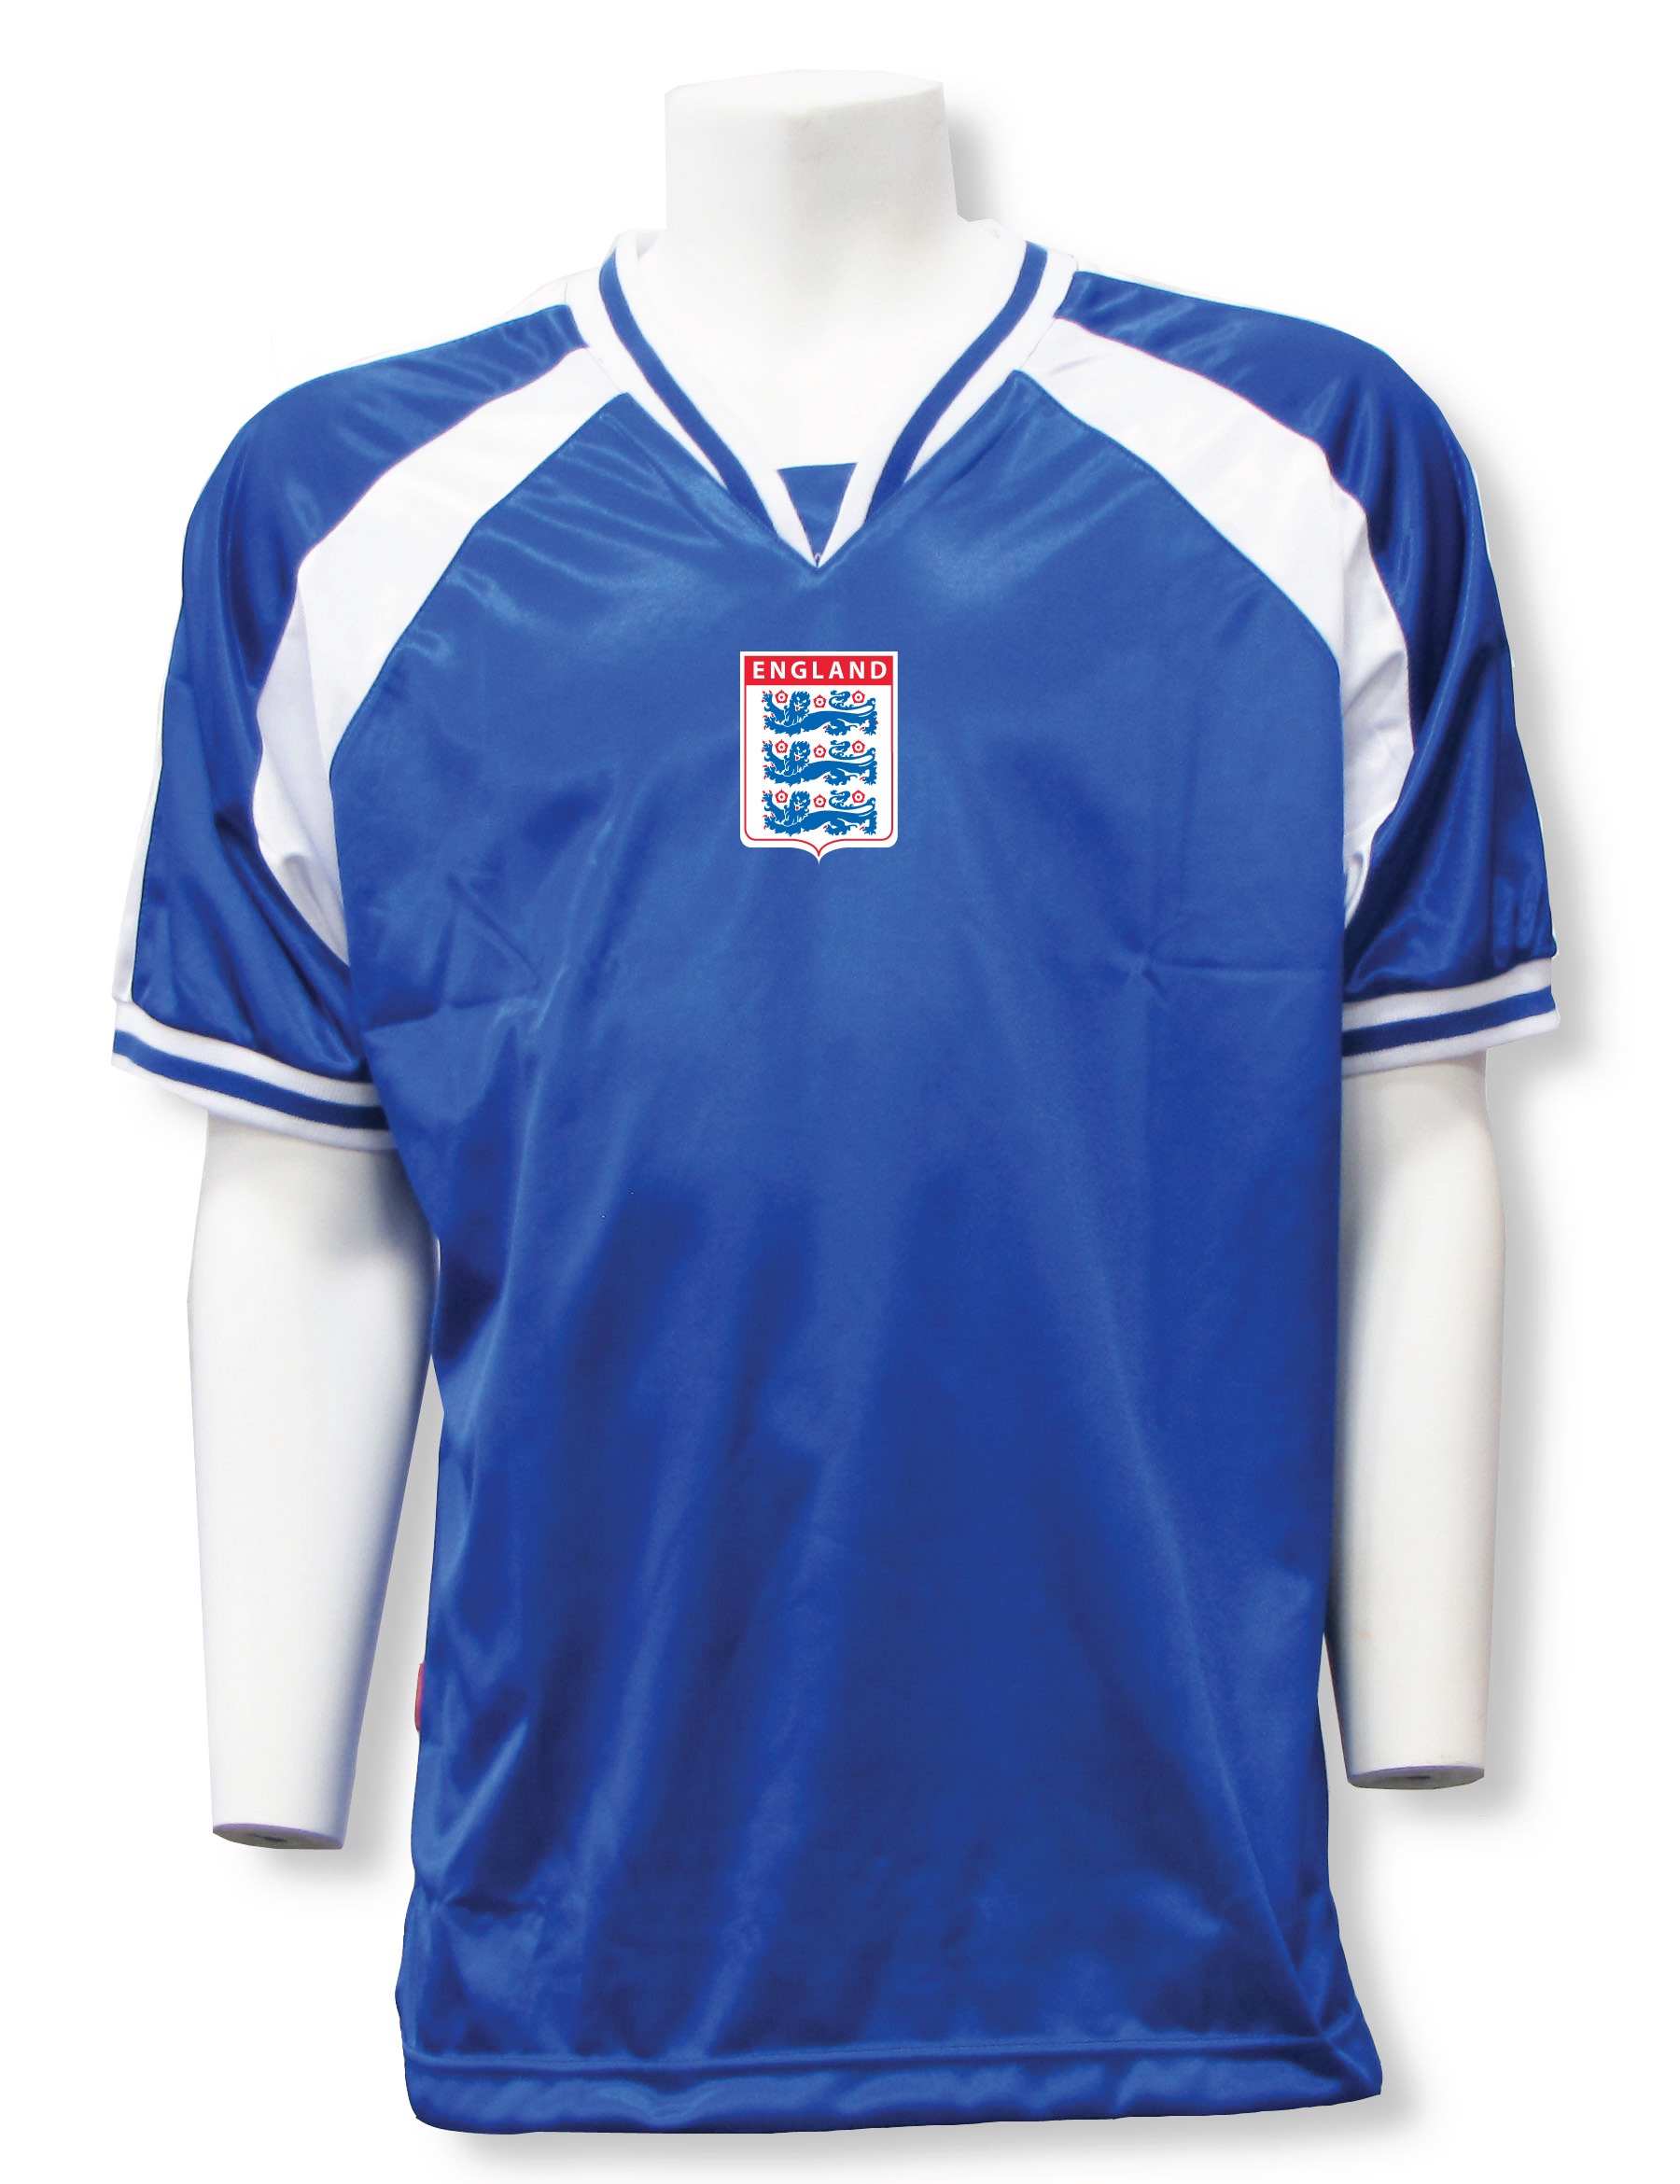 england soccer jersey in royal/white Spitfire